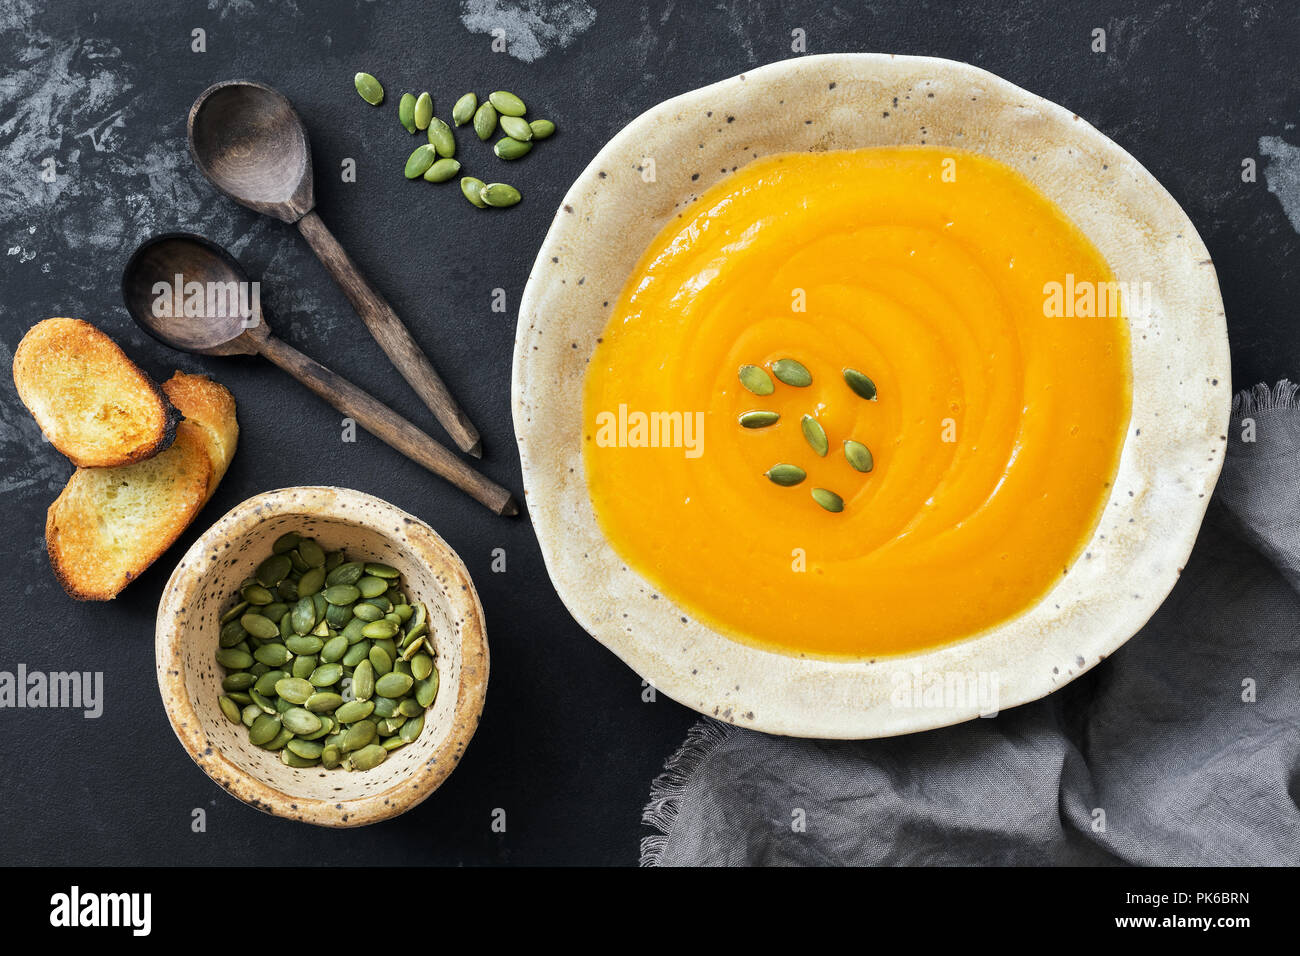 Pumpkin cream soup with toast and seeds on a rustic dark background. Top view, overhead, flat lay. Stock Photo